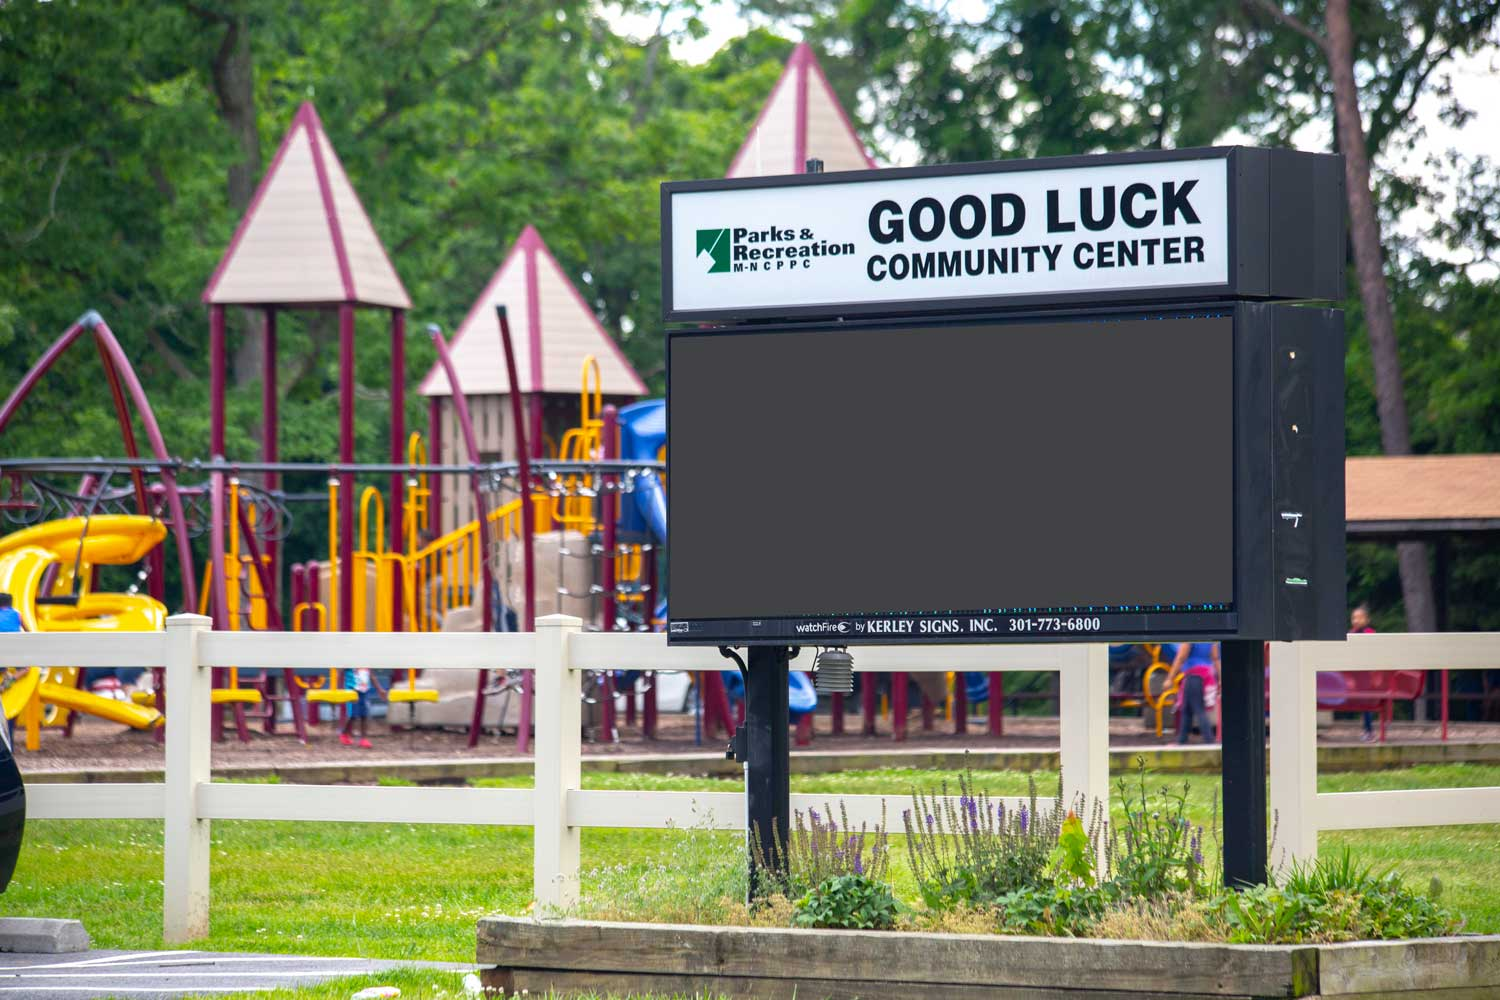 Good Luck Community Center is 5 Minutes from Carrollon Manor Apartments